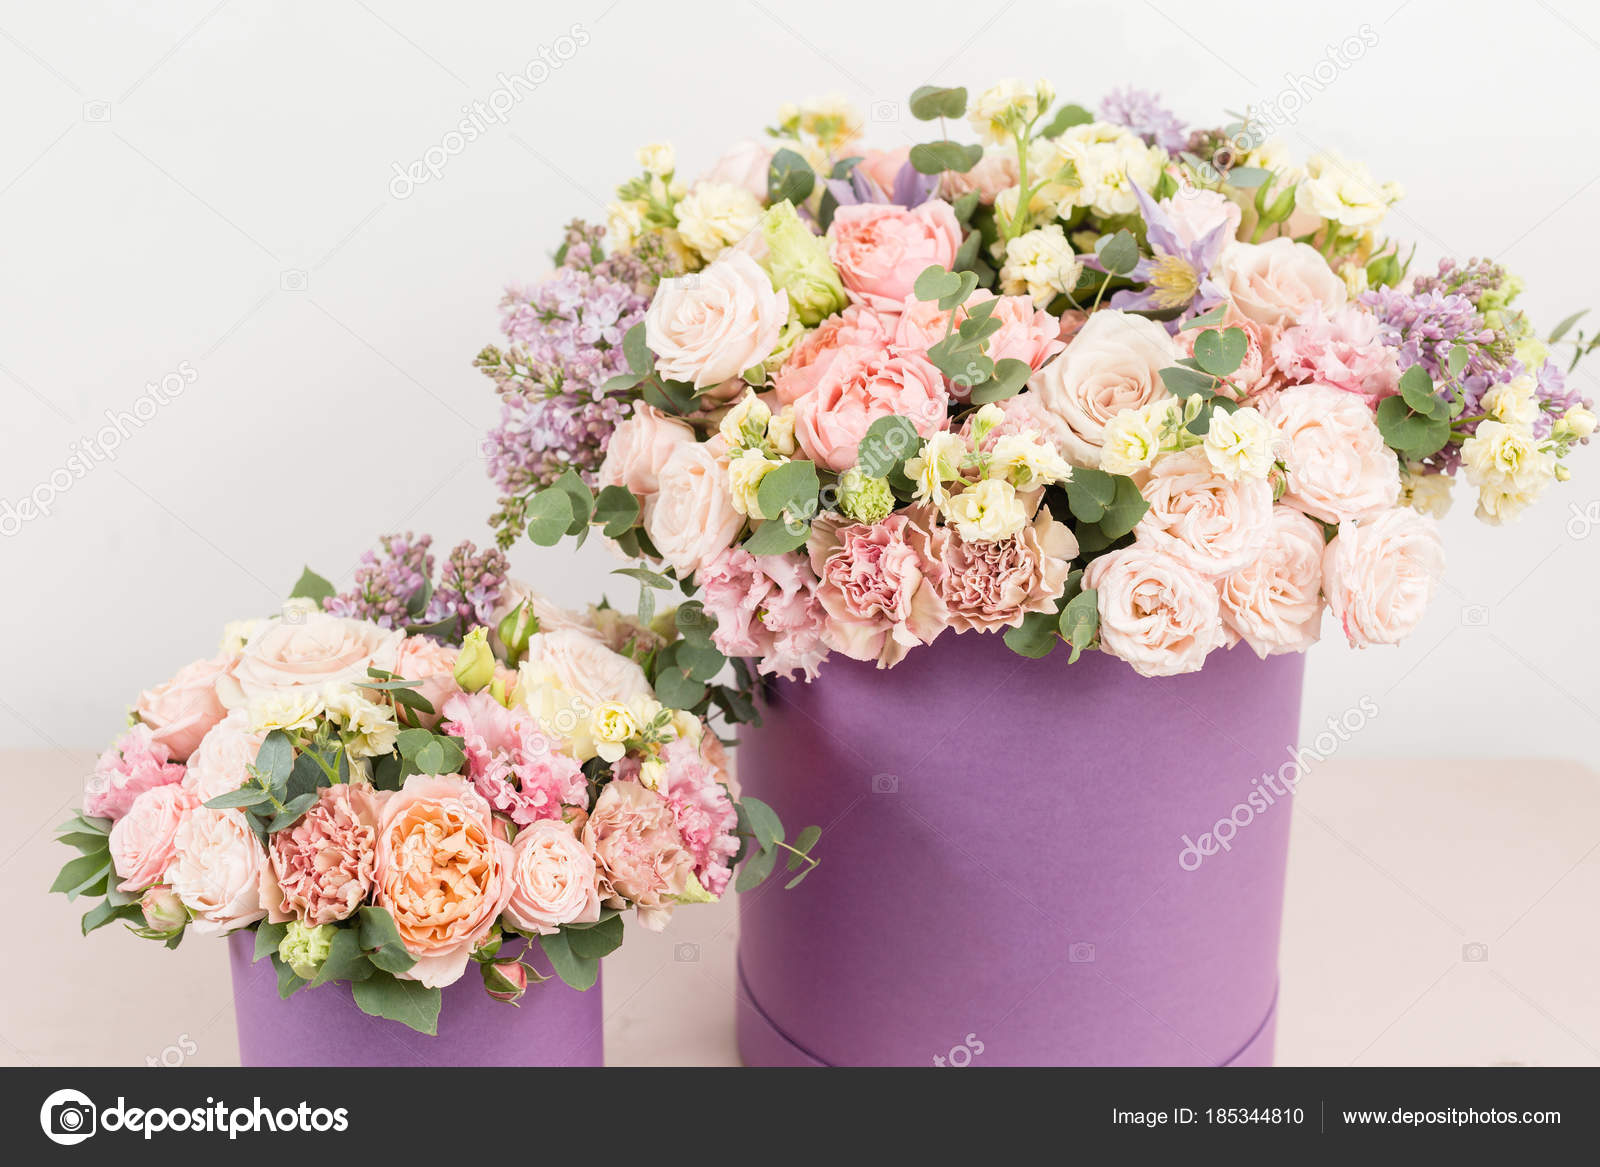 Beautiful Luxury Bunch Of Mixed Flowers On Pink Table The Work Of